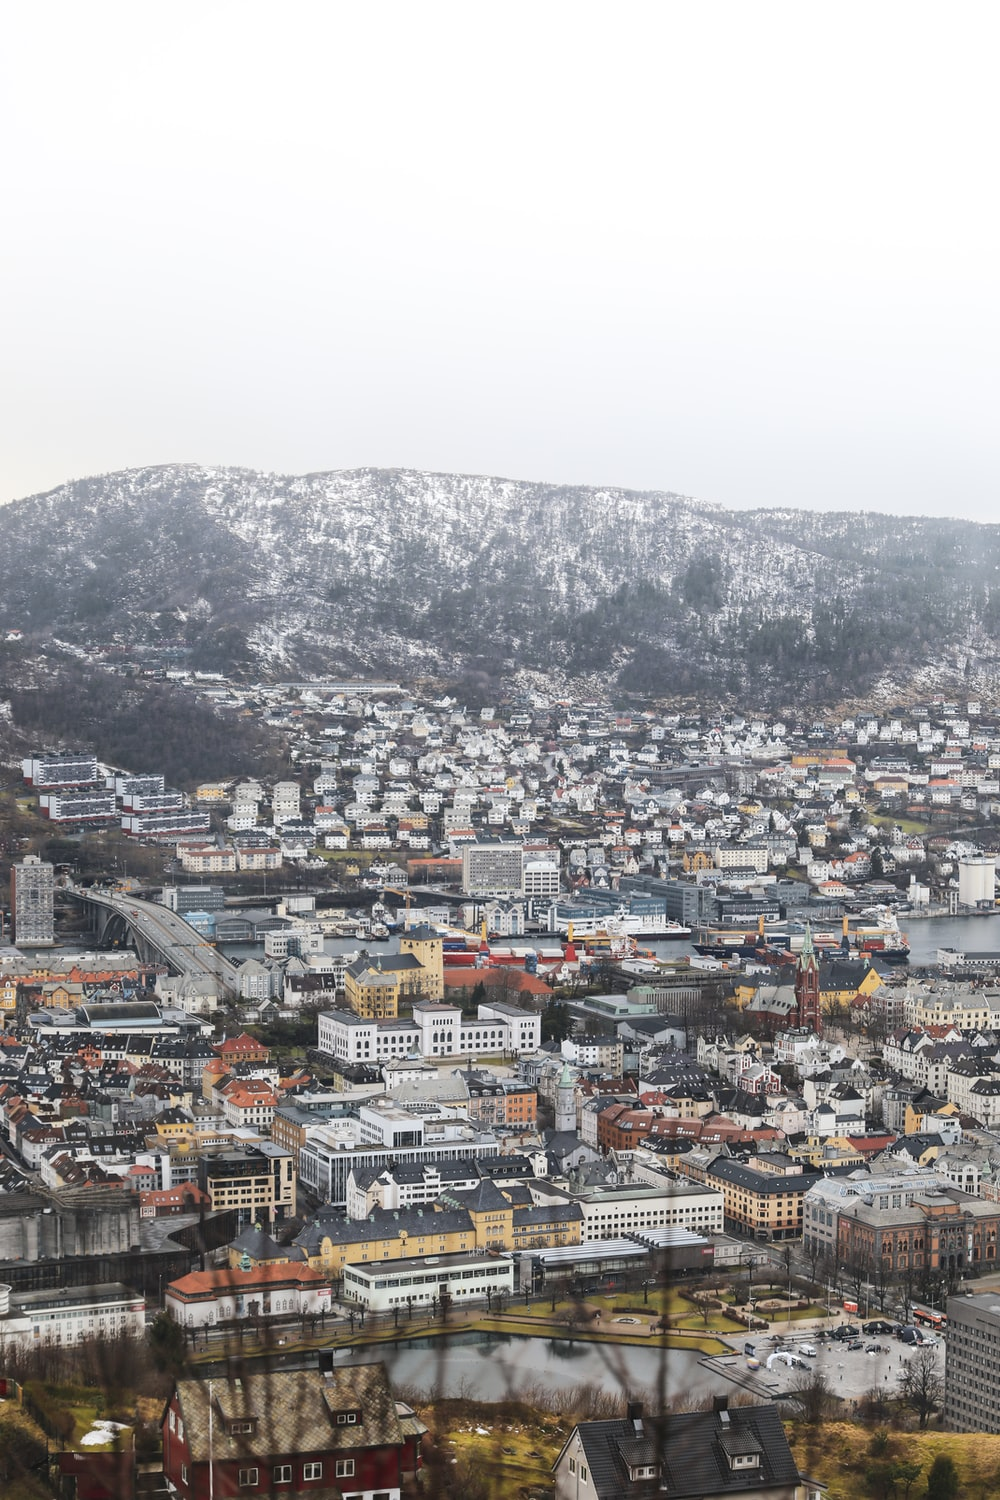 aerial photography of city during winter season